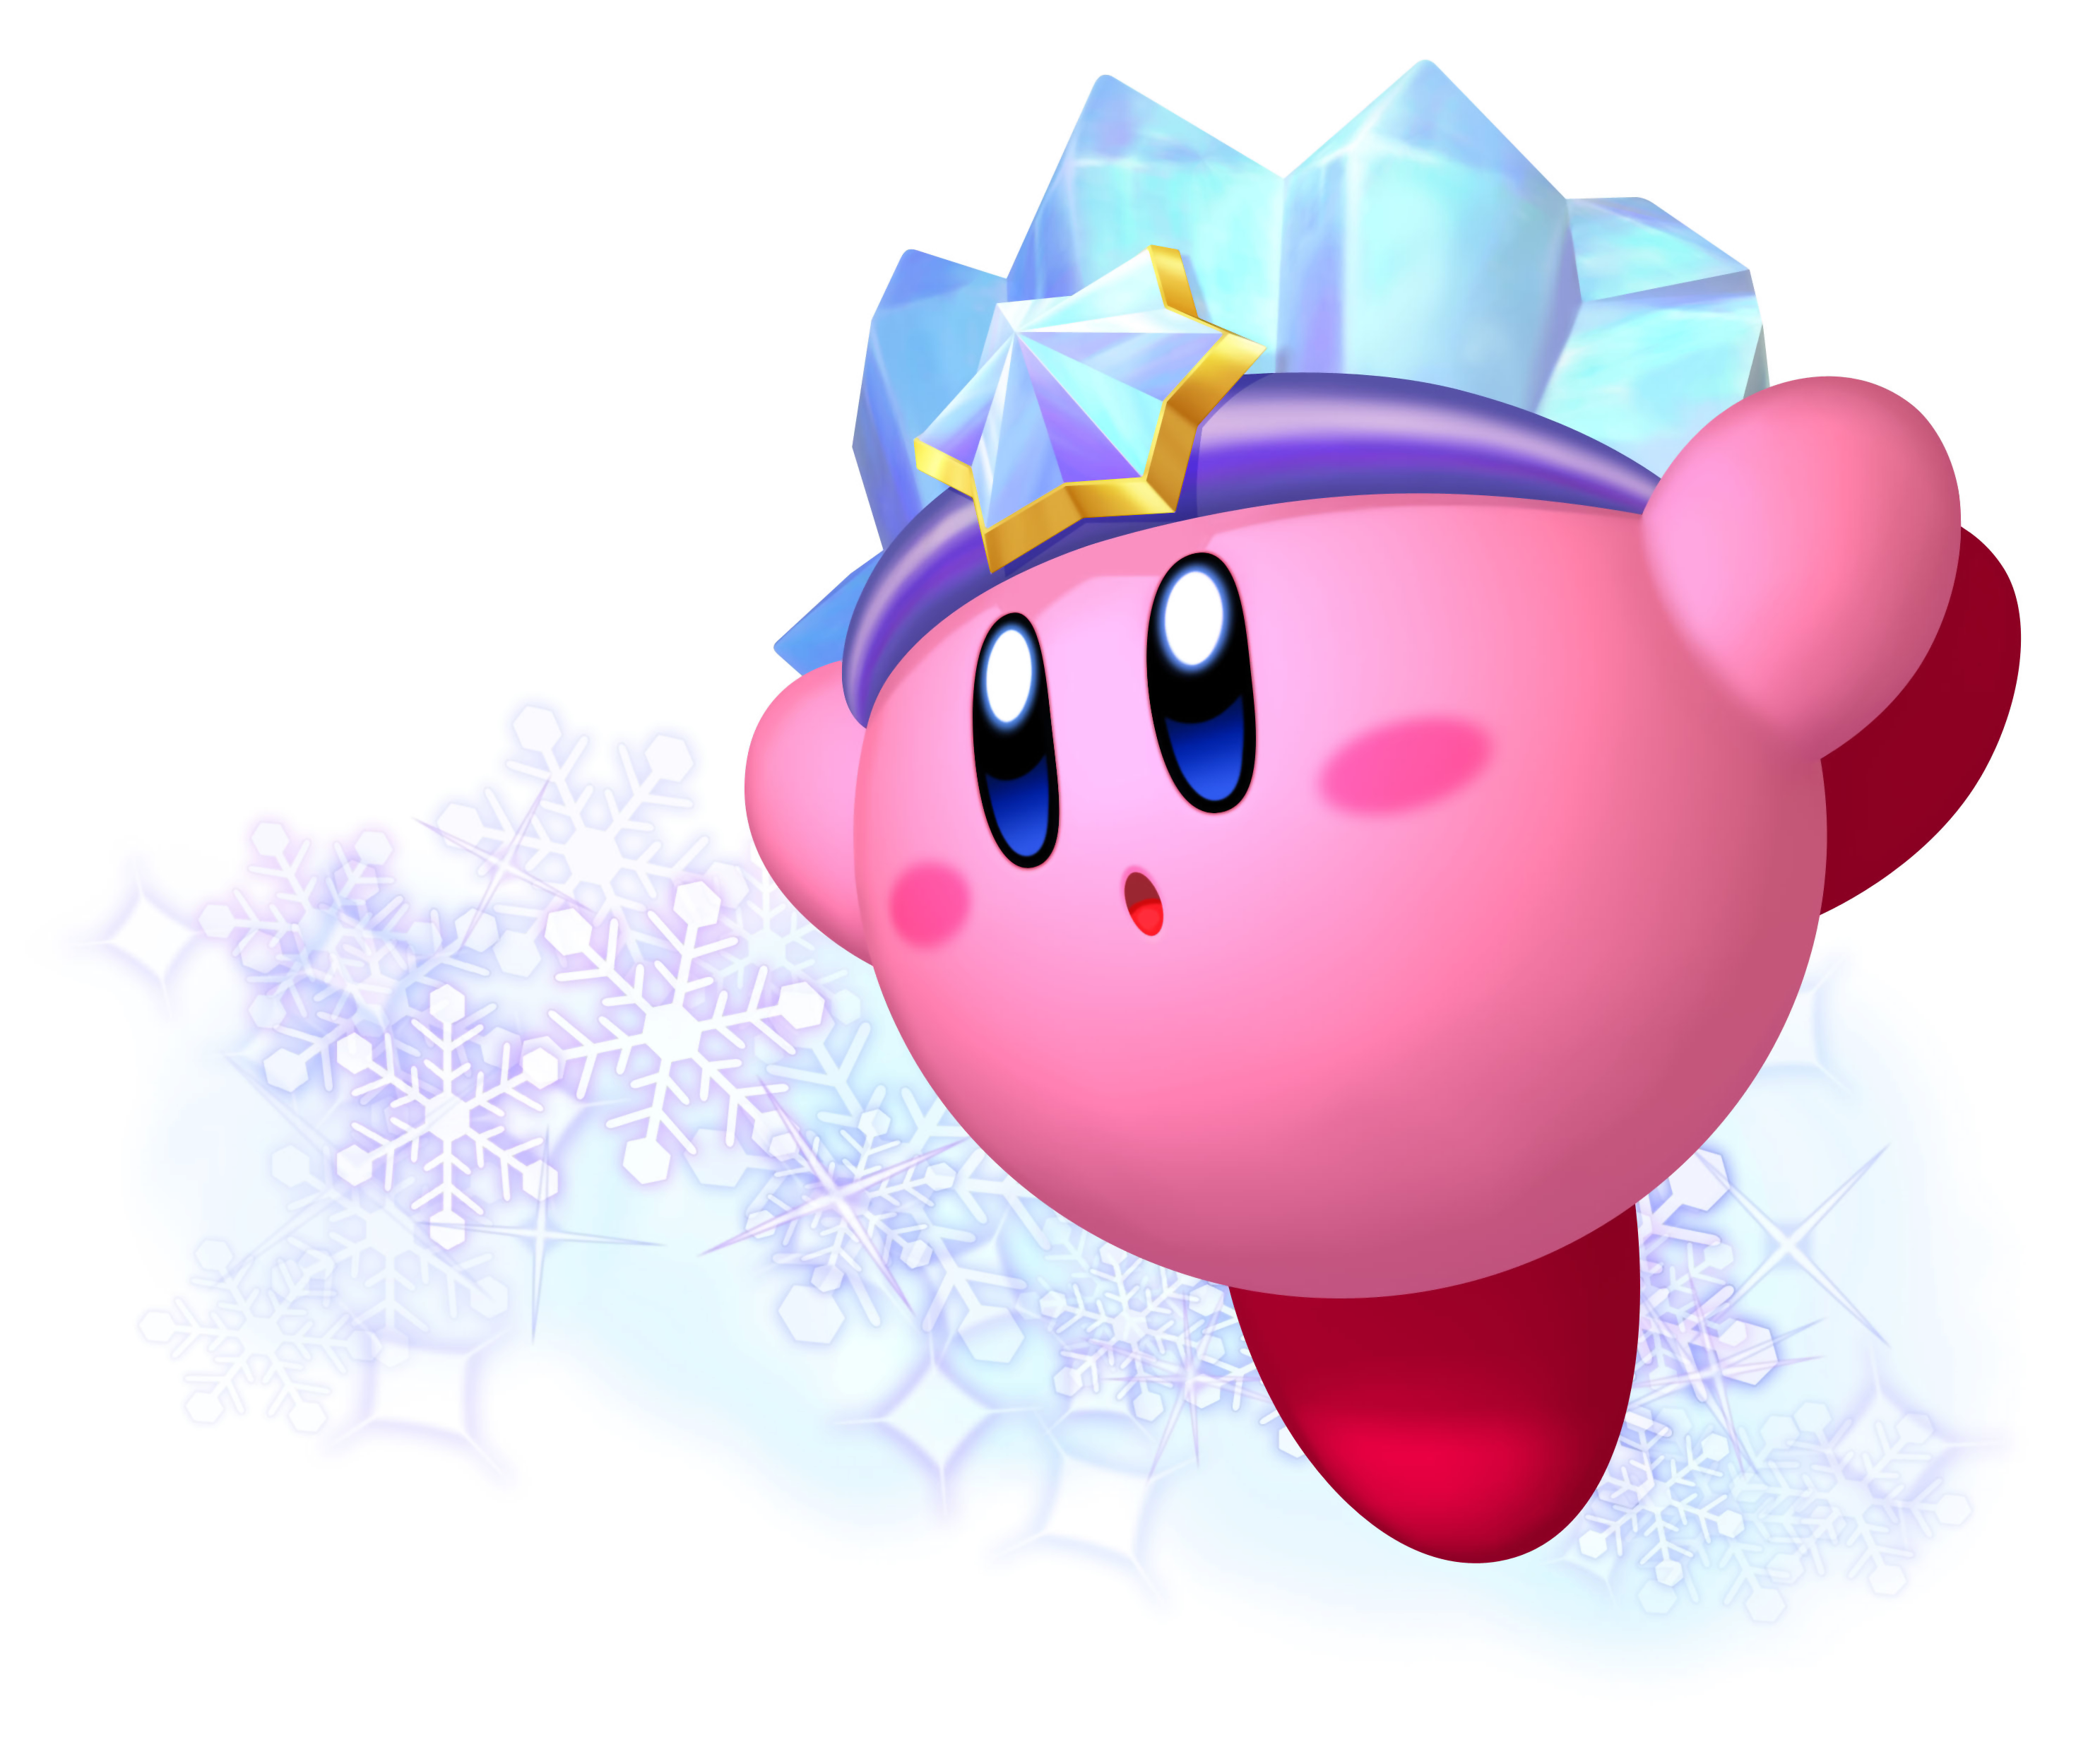 Ice Kirby Picture Ice Kirby Wallpaper